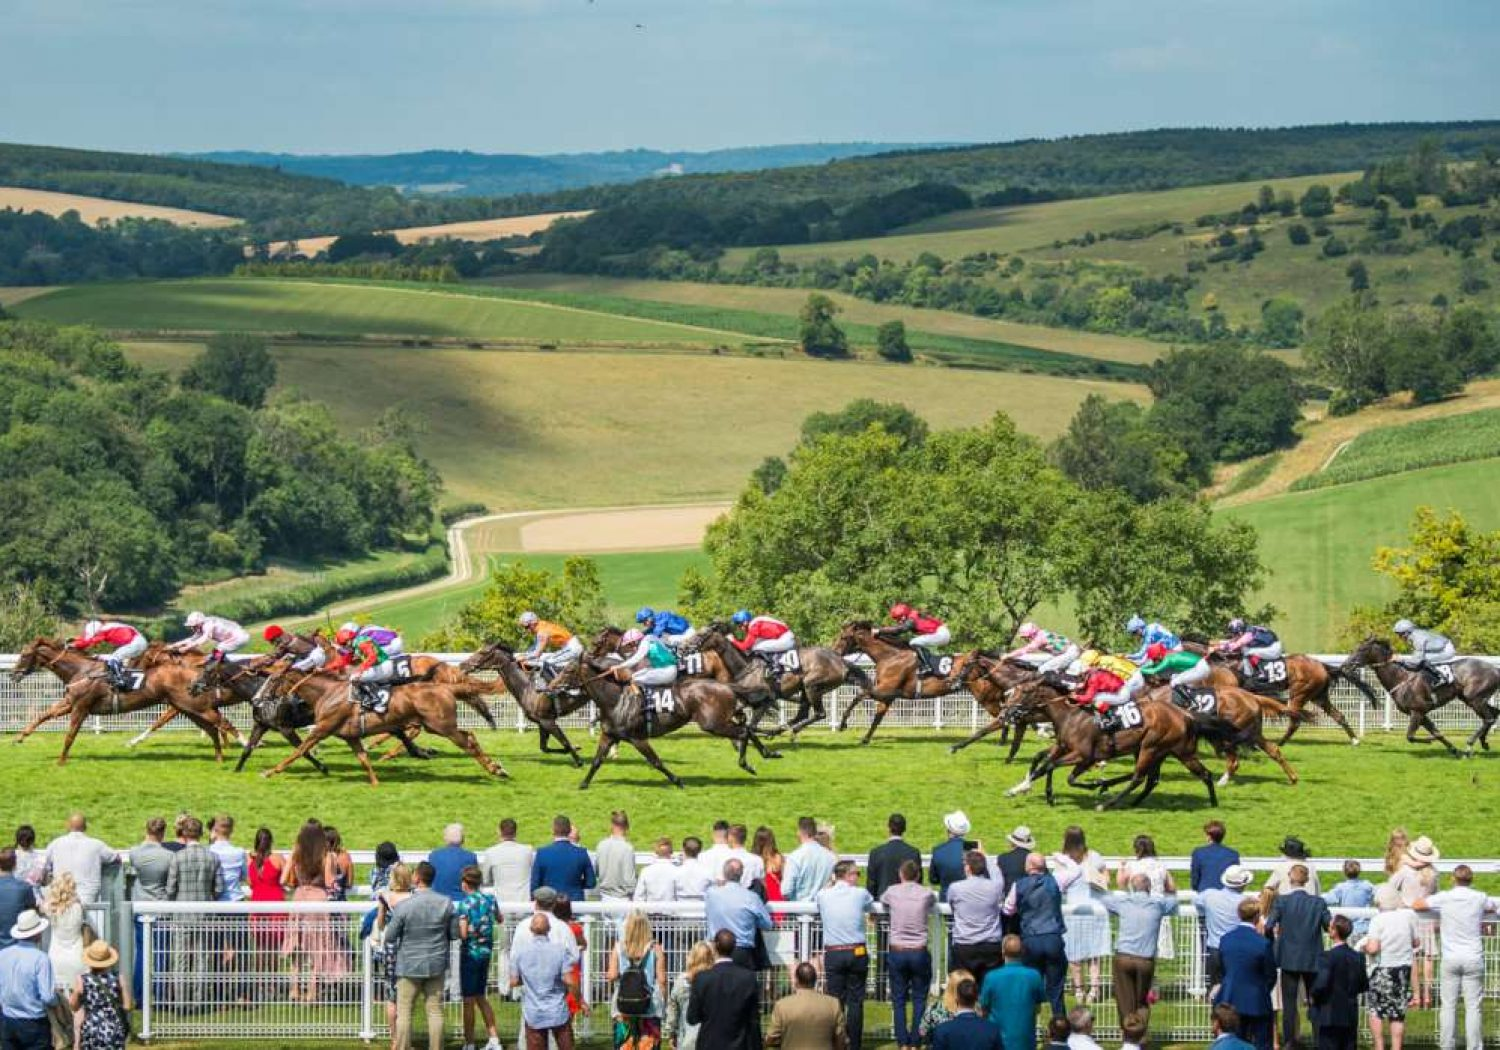 an image showing Goodwood racecourse with horses racing